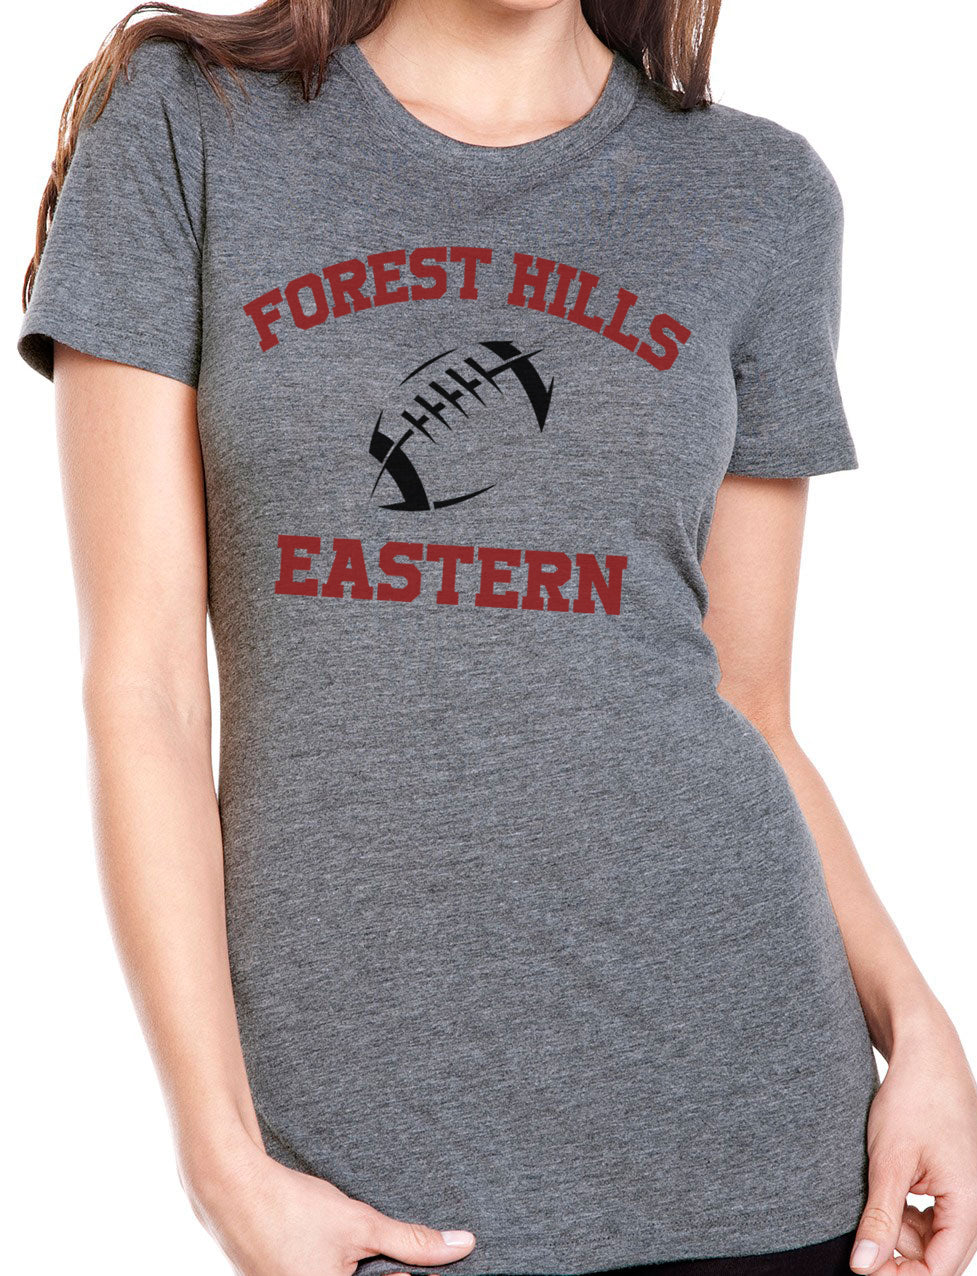 FOREST HILLS EASTERN FOOTBALL Tri-Blend Short Sleeve Tee for Women